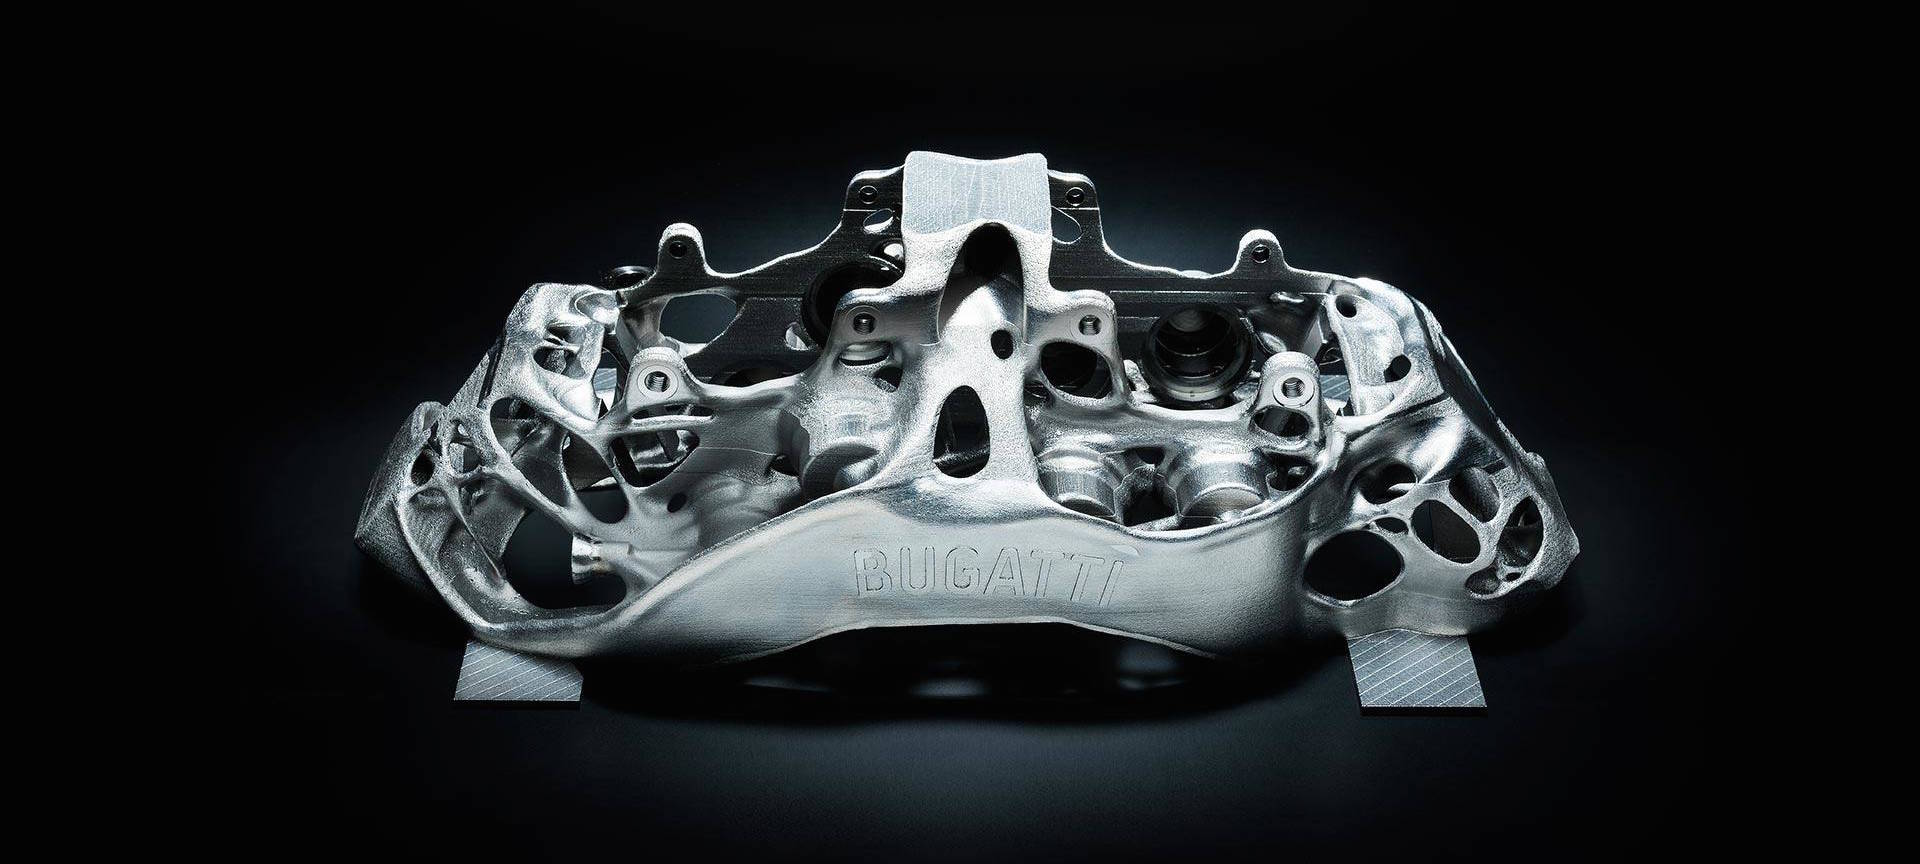 Bugatti Creates First 3D-Printed Brake Caliper, Just 6.4 Pounds